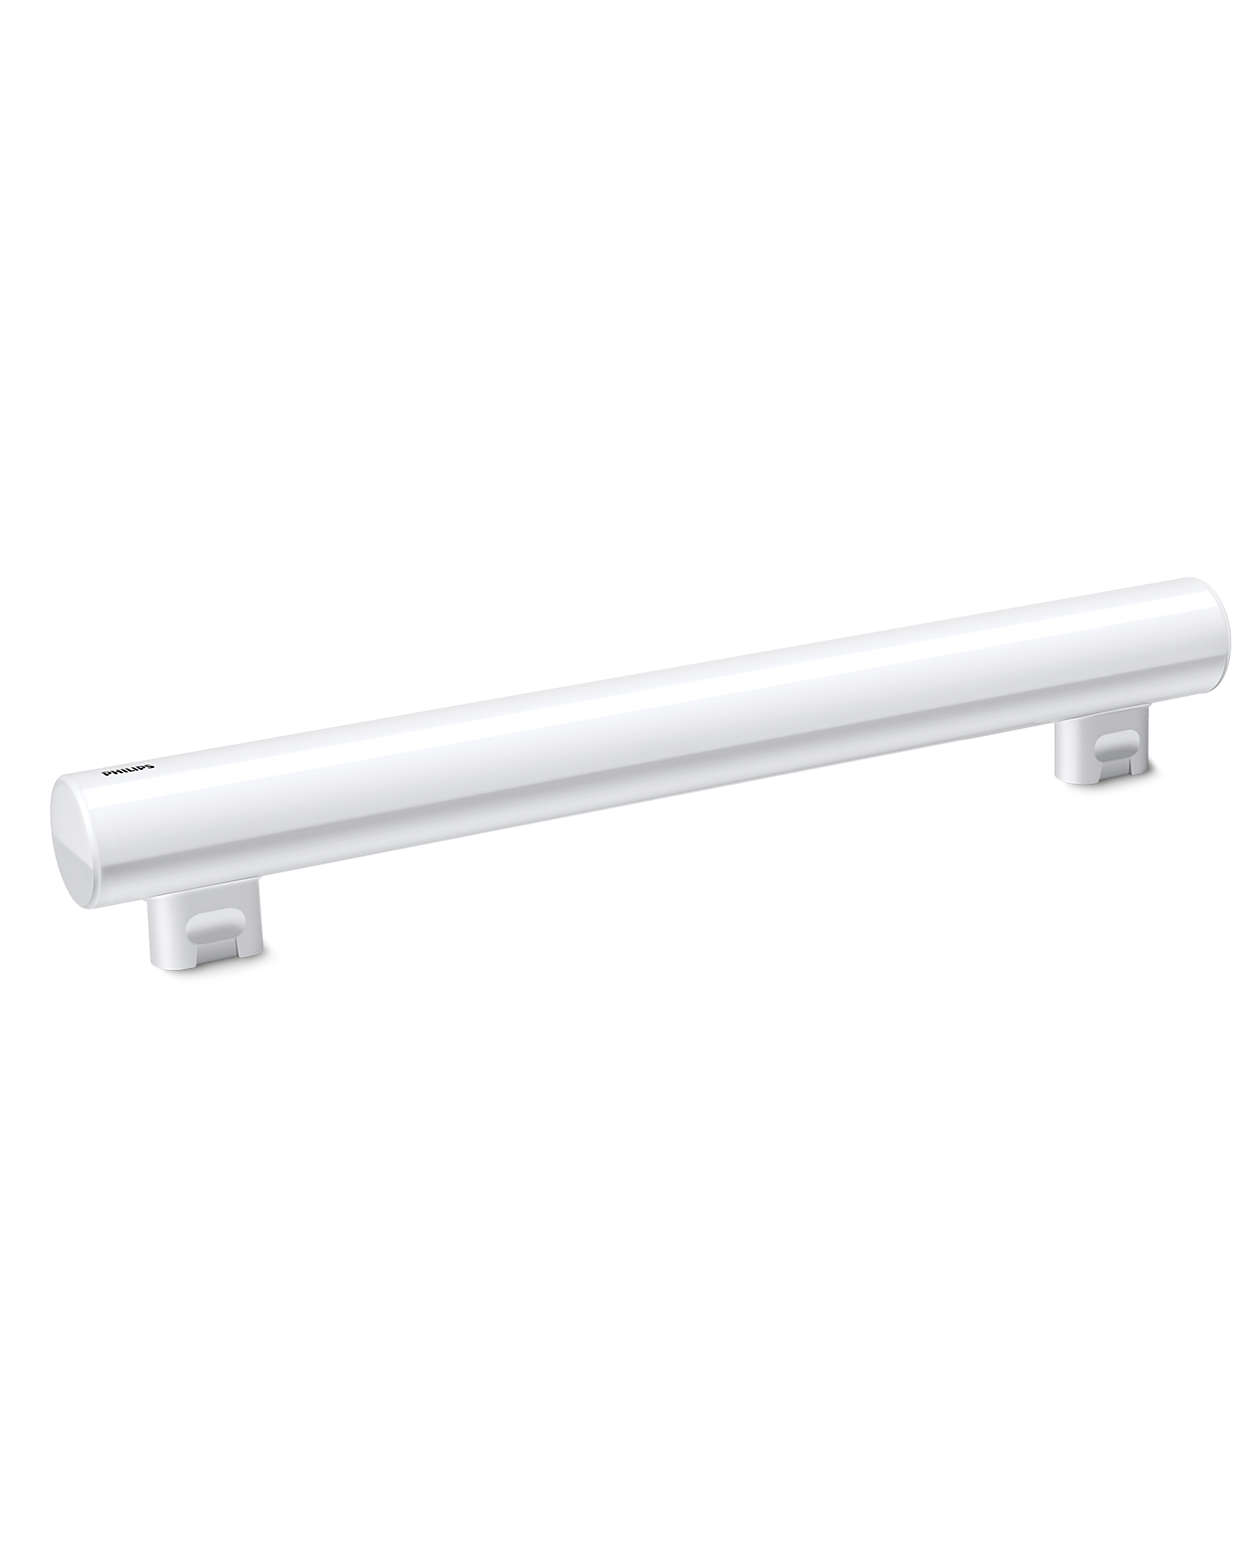 LED Tubo lineare 8718291720041  Philips